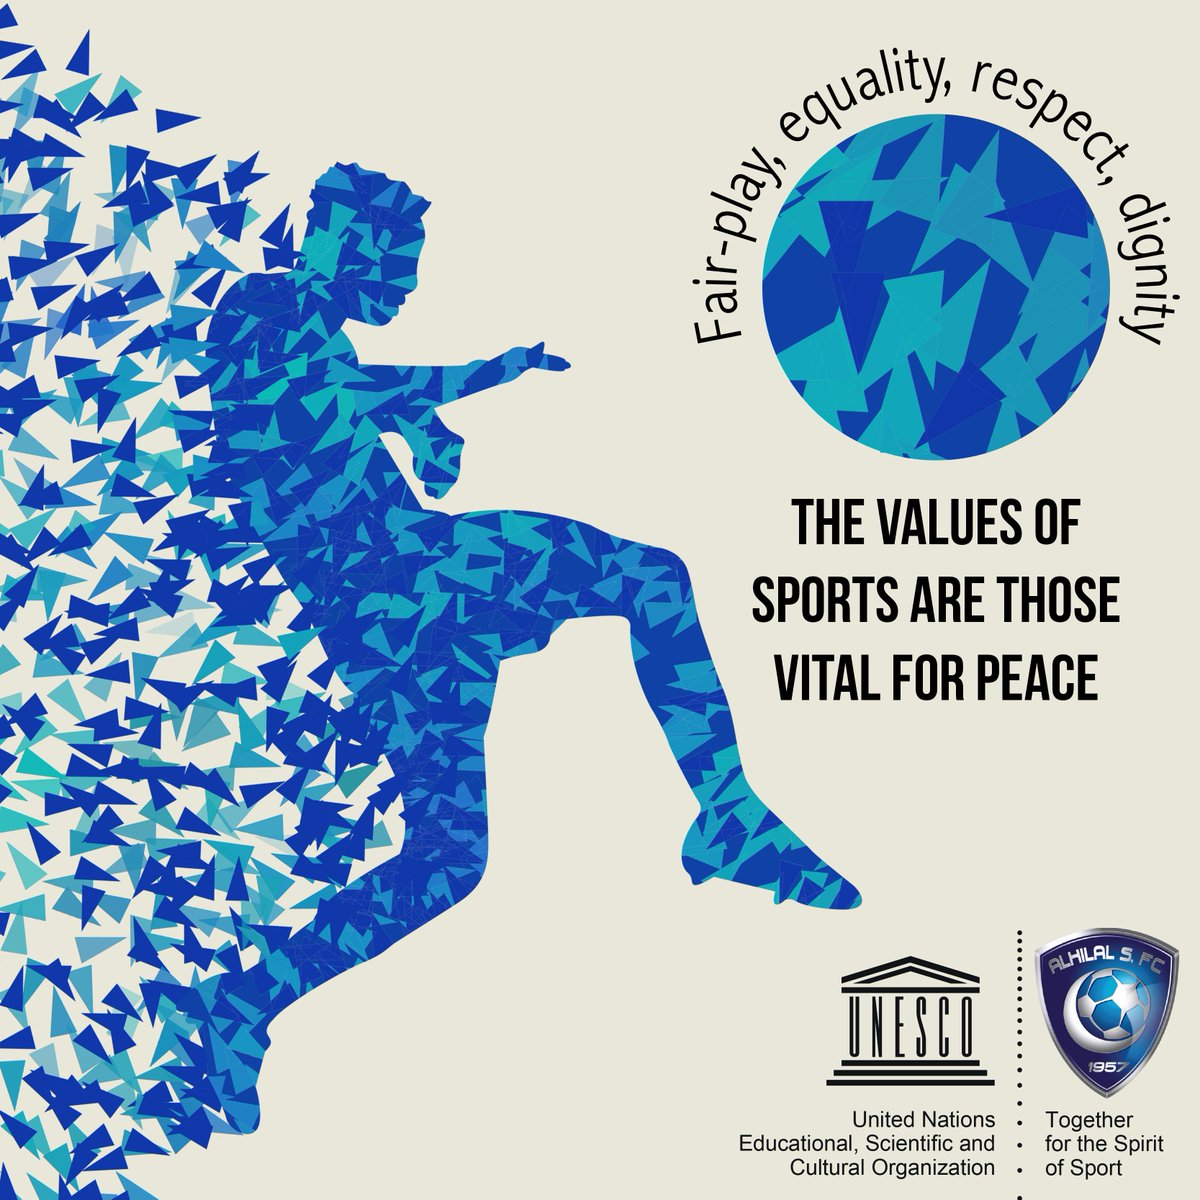 We're proud to join forces w/ @Alhilal_FC to promote social inclusion thru sports http://t.co/gqduFxMdXD @Alhilal_EN http://t.co/HRuMru76rx